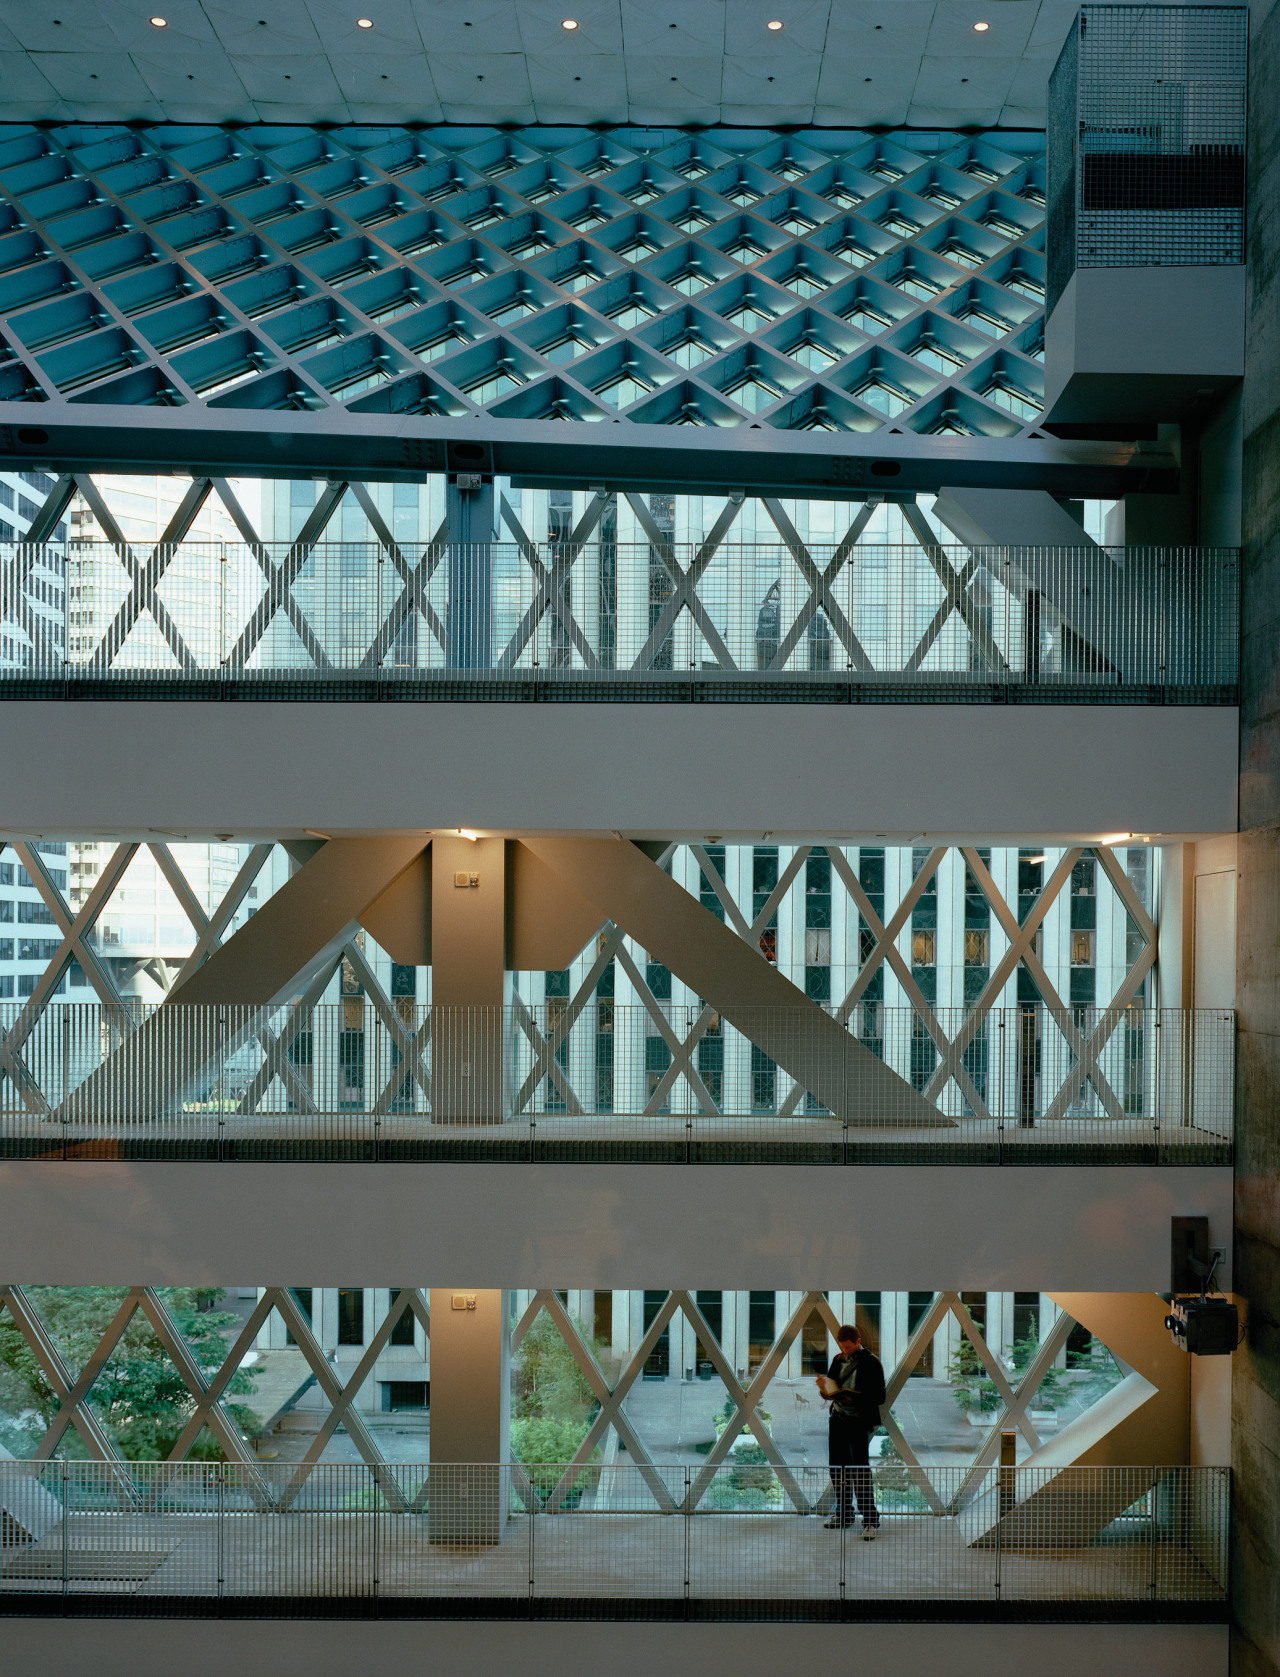 View of all the levels in side of architecture, building, daylighting, daytime, facade, glass, metropolitan area, reflection, structure, tourist attraction, window, teal, gray